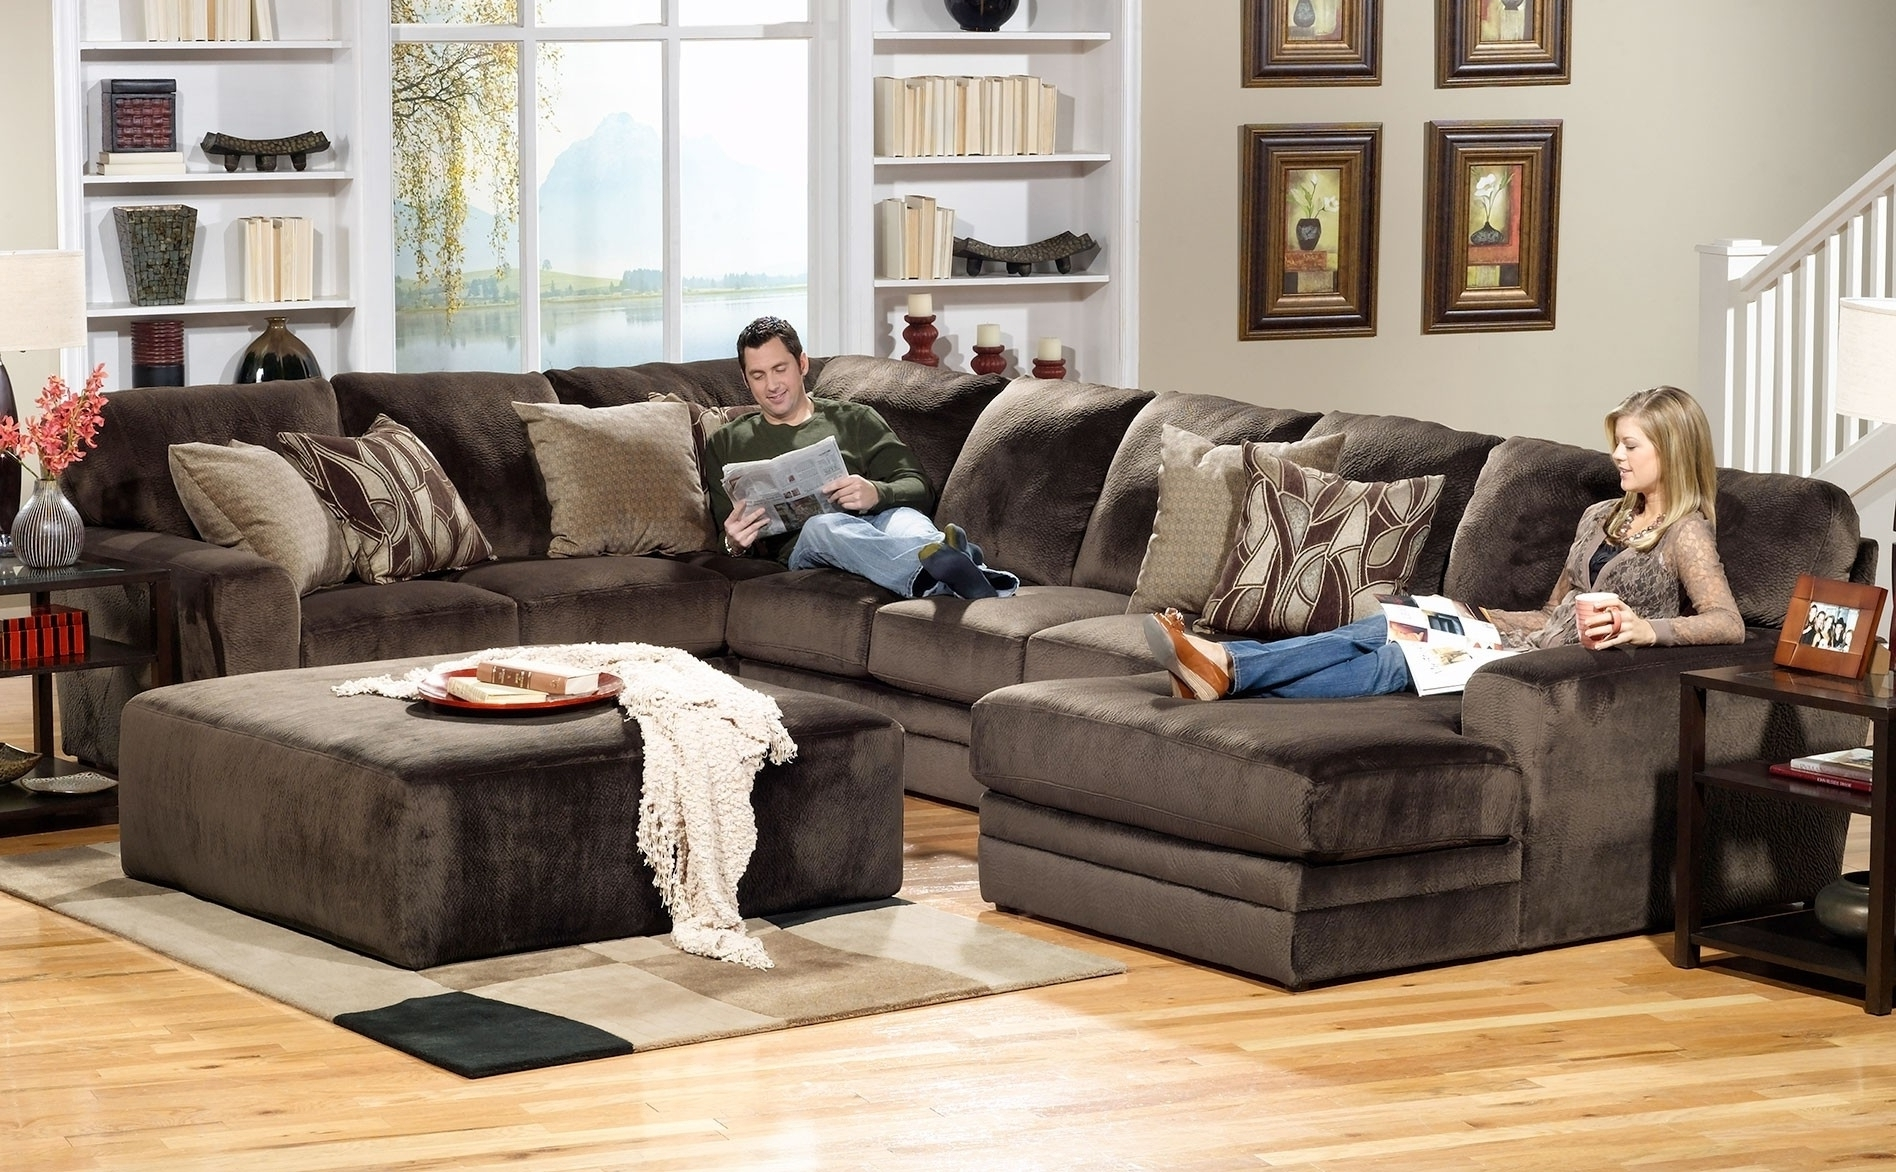 Clarksville Tn Sectional Sofas In Famous Furniture: Harbor Freight Furniture (View 2 of 15)